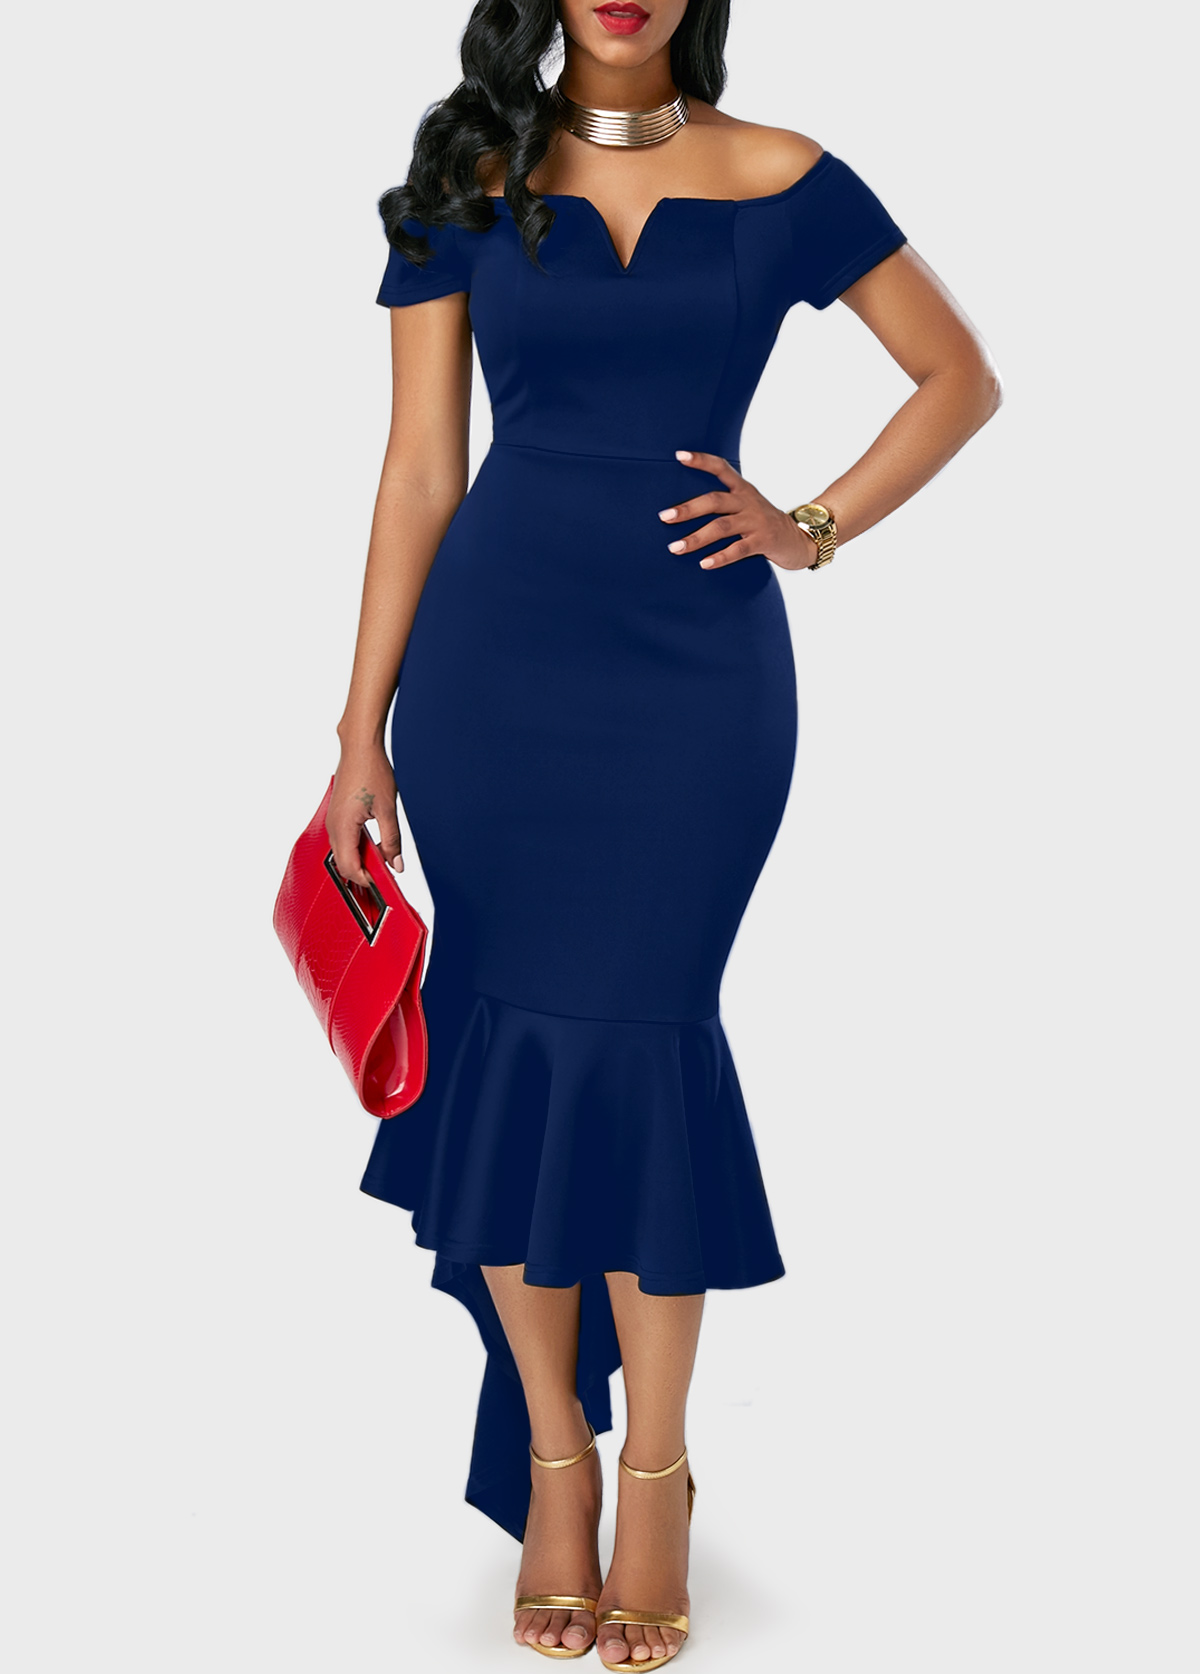 1aeb9e8f862c Peplum Hem Navy Blue Off the Shoulder Dress